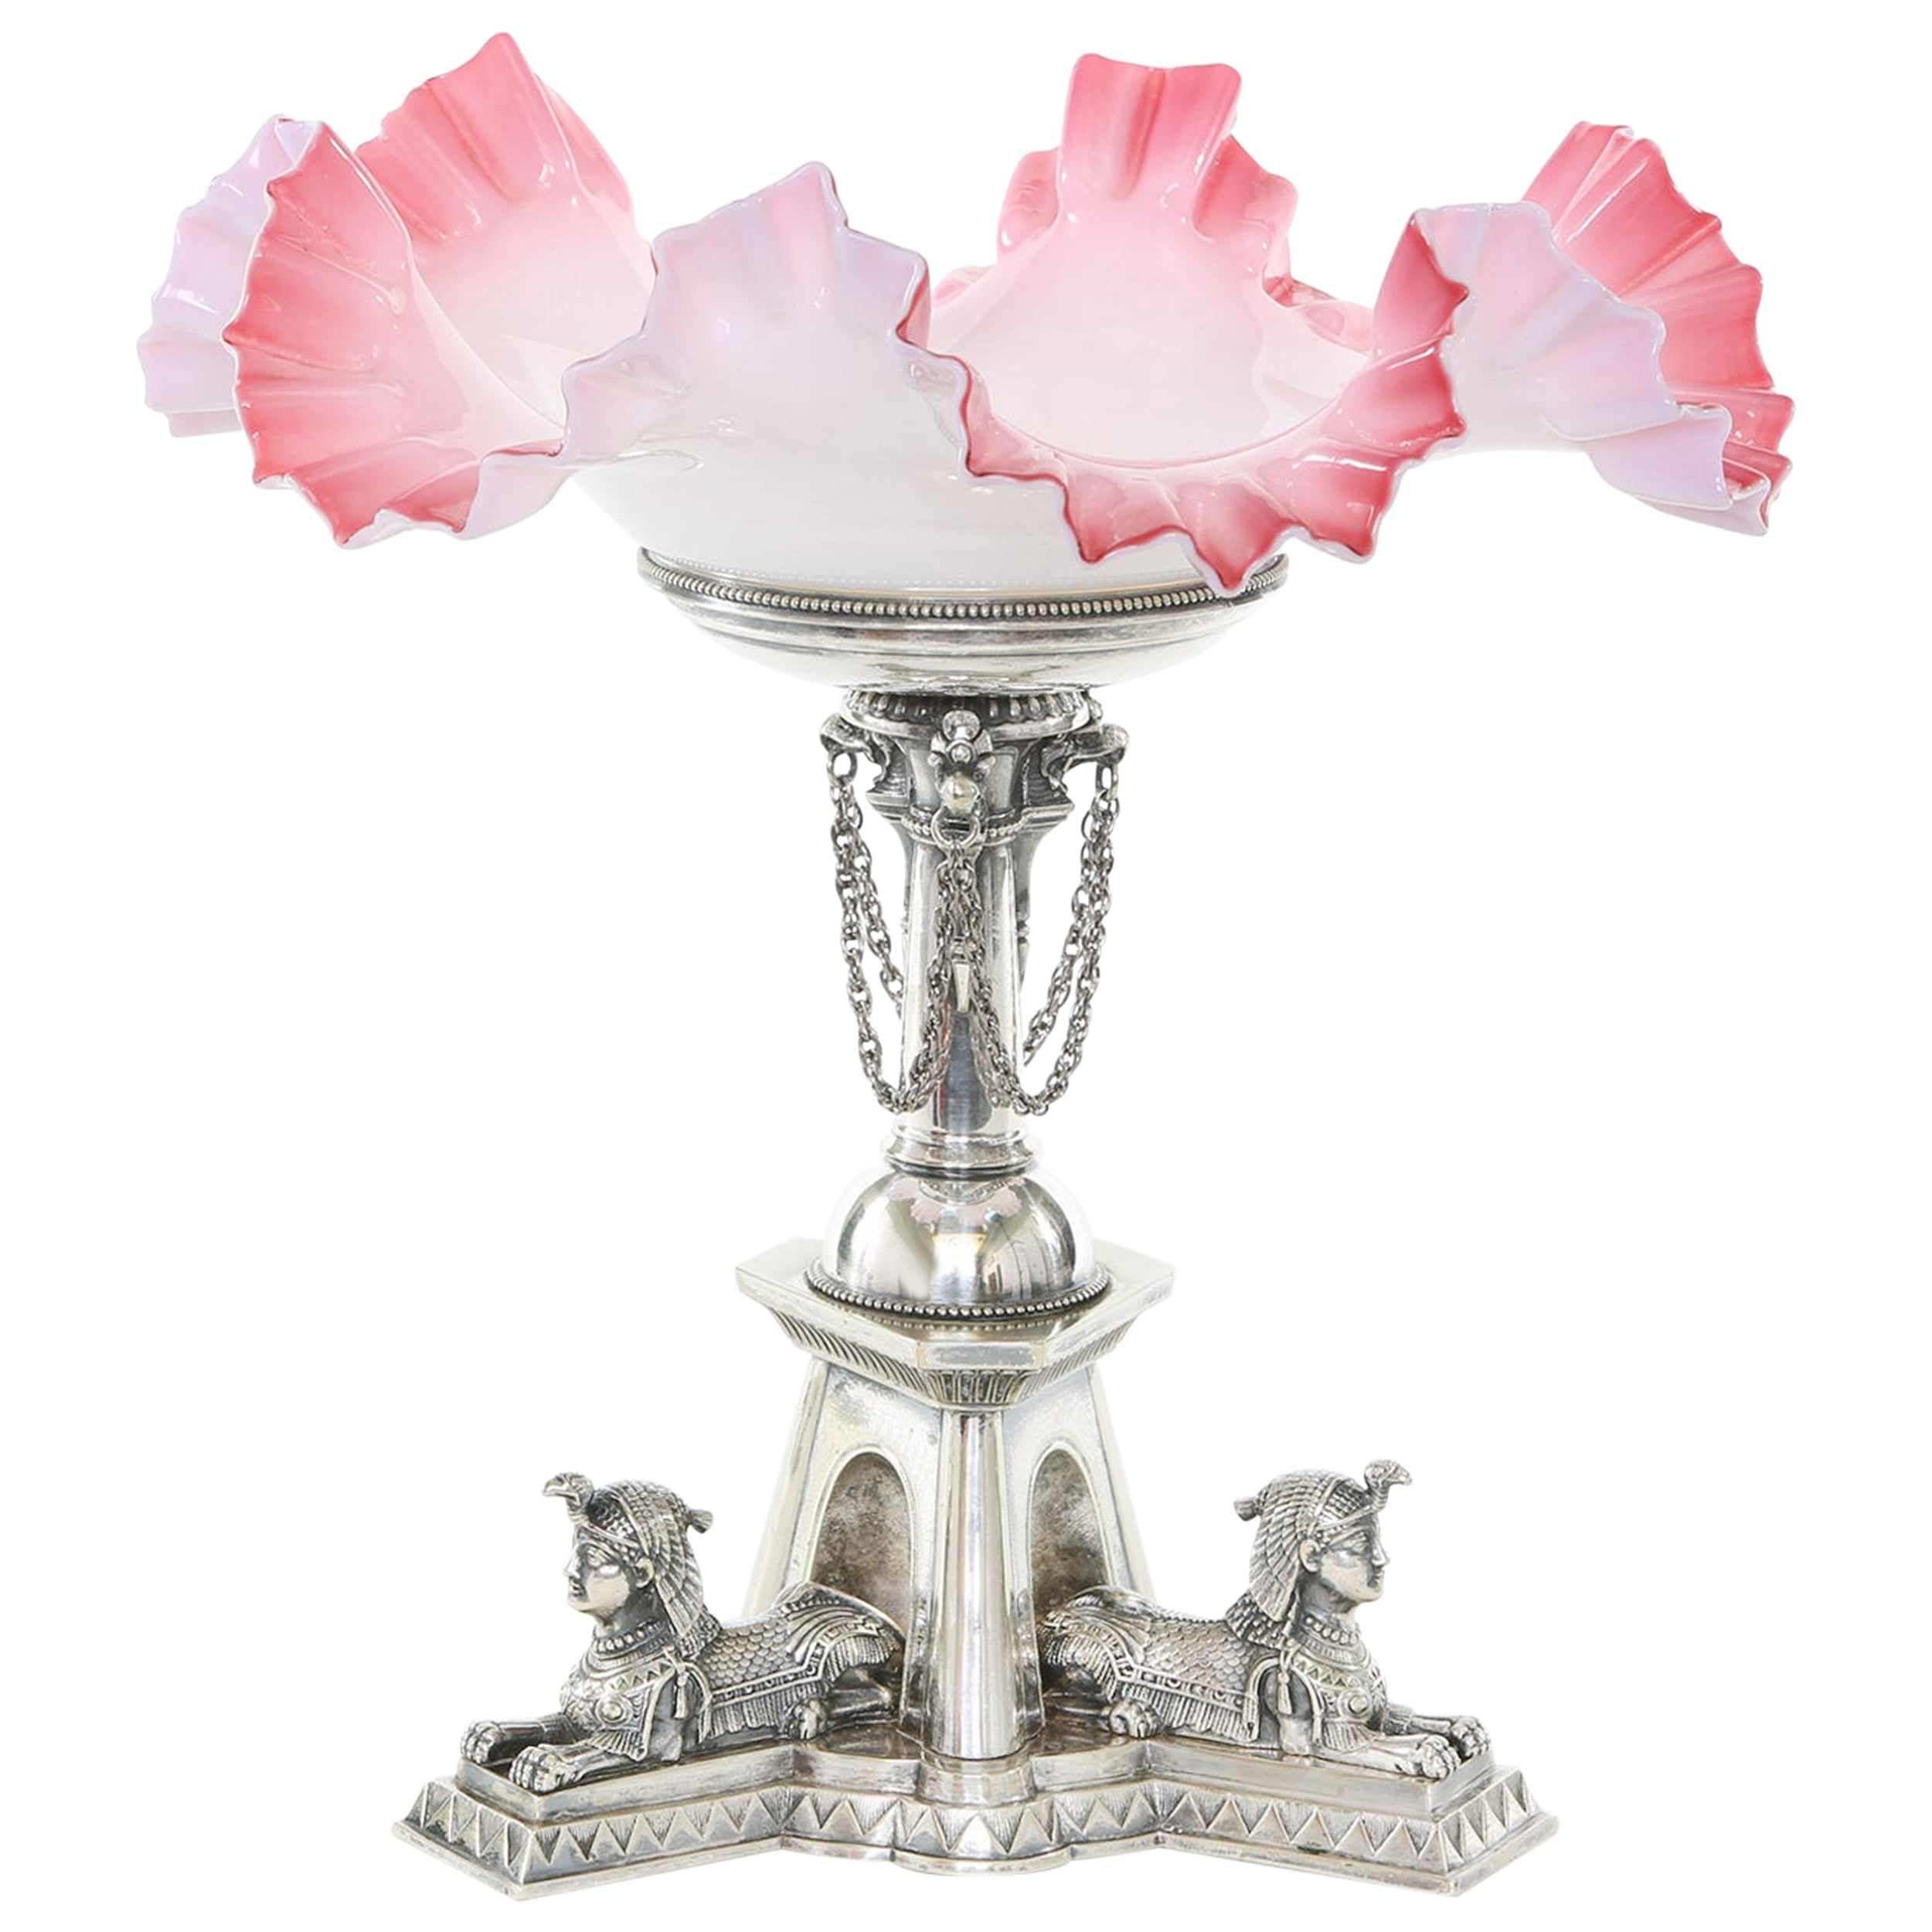 Mid-19th Century Silver Plated / Art Glass Tazza